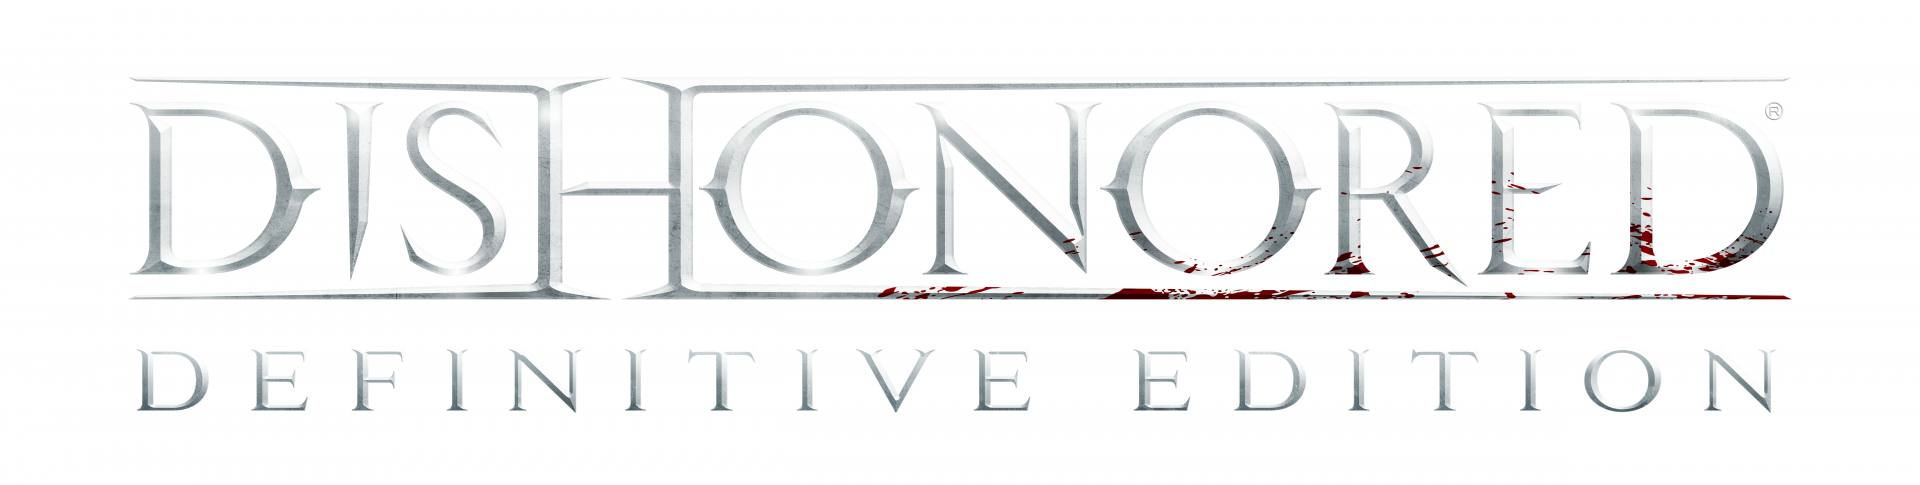 Dishonored Definitive Edition Logo